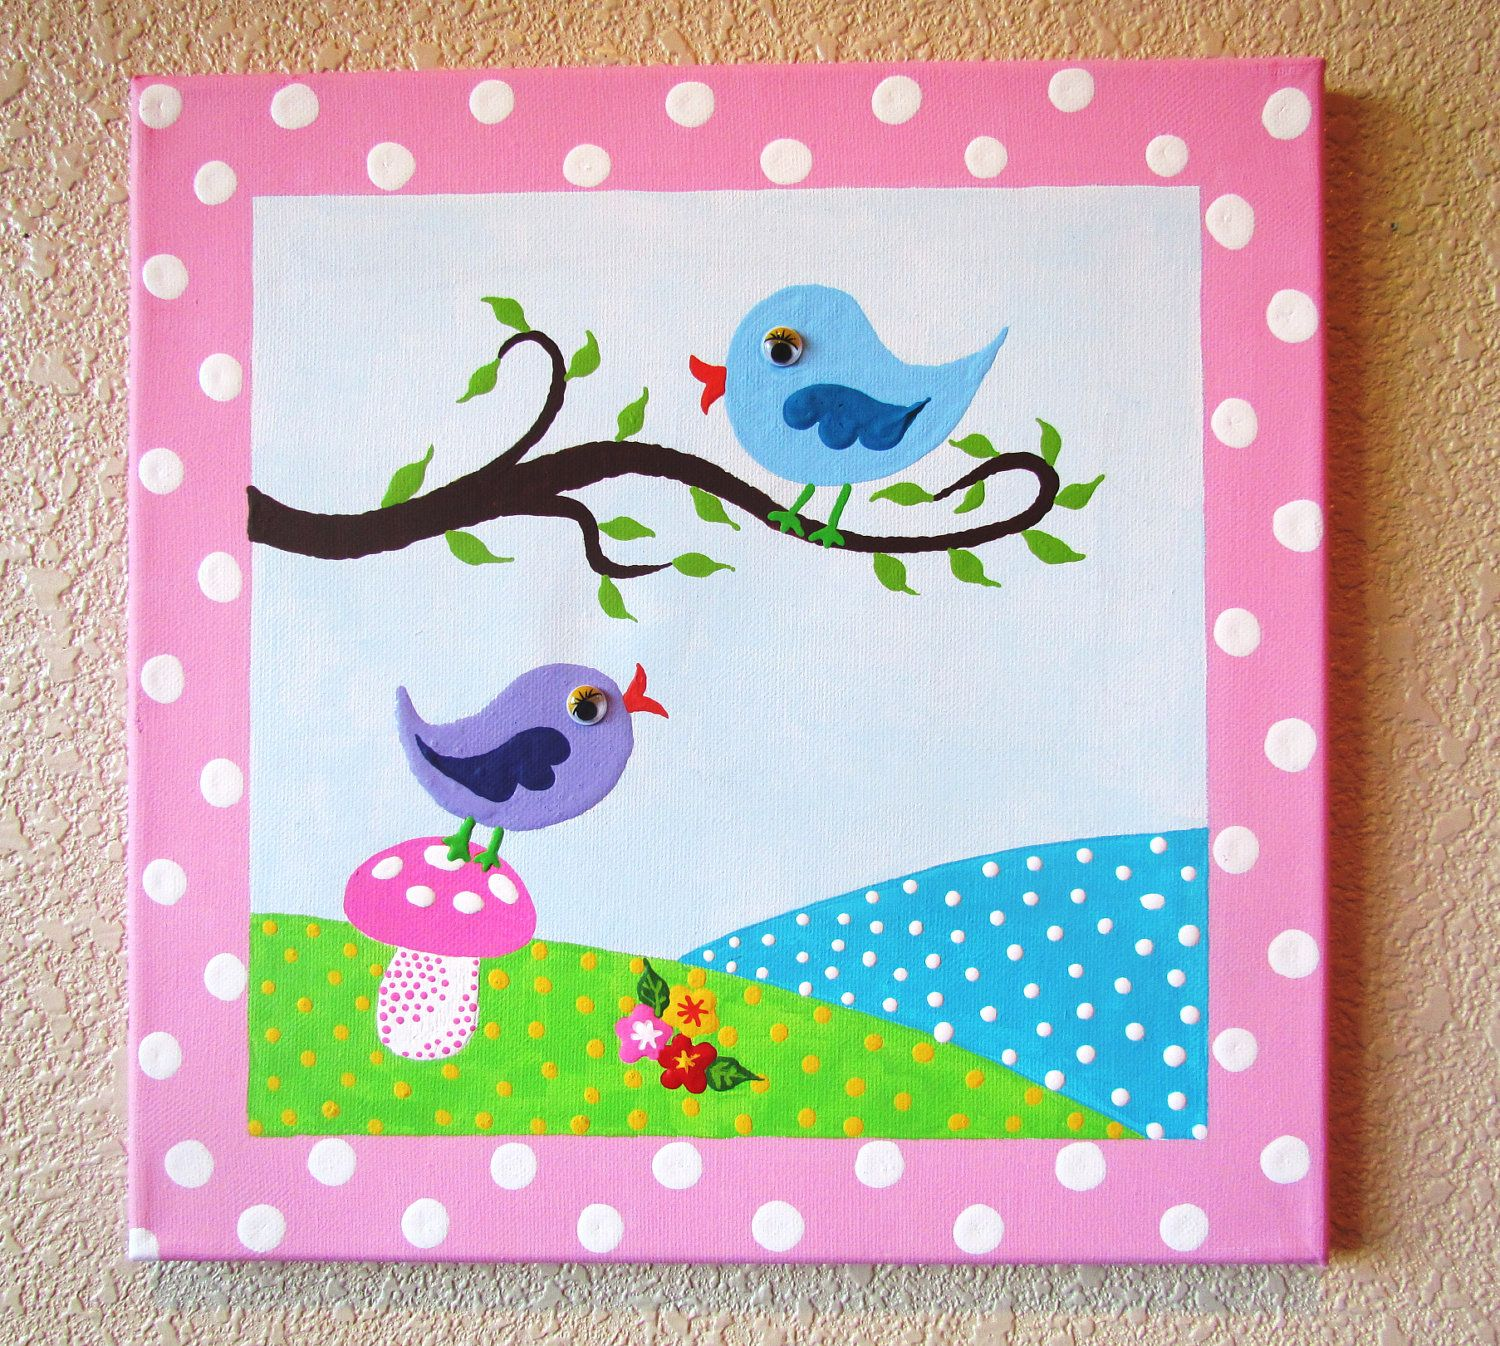 canvas painting ideas for kids - Painting Images For Kids